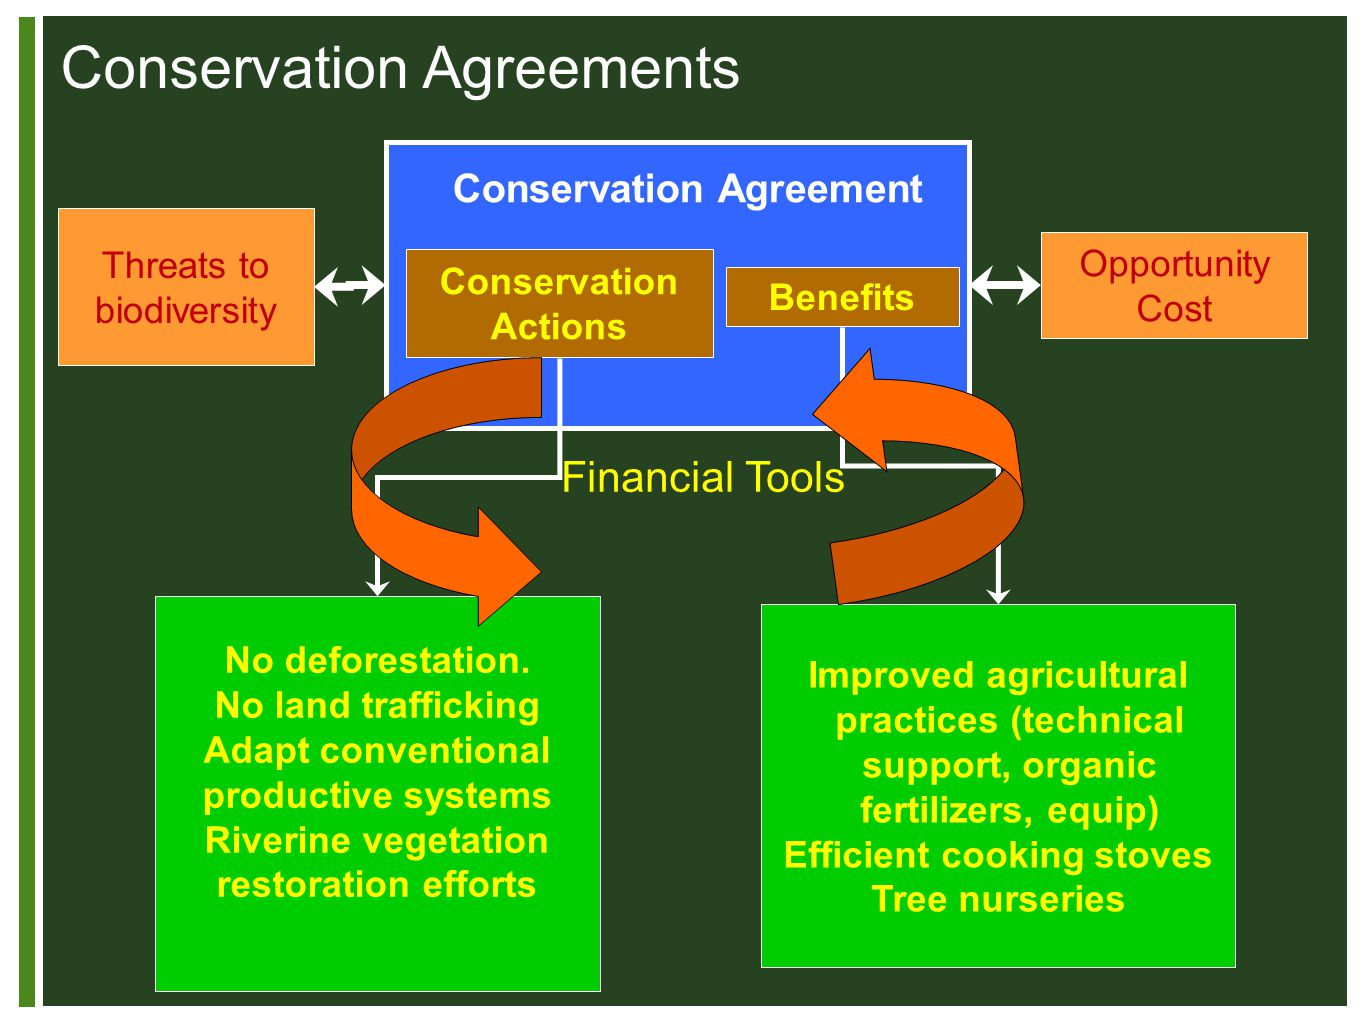 Conservation Agreement Conservation Actions Benefits Threats to biodiversity Opportunity Cost No deforestation.